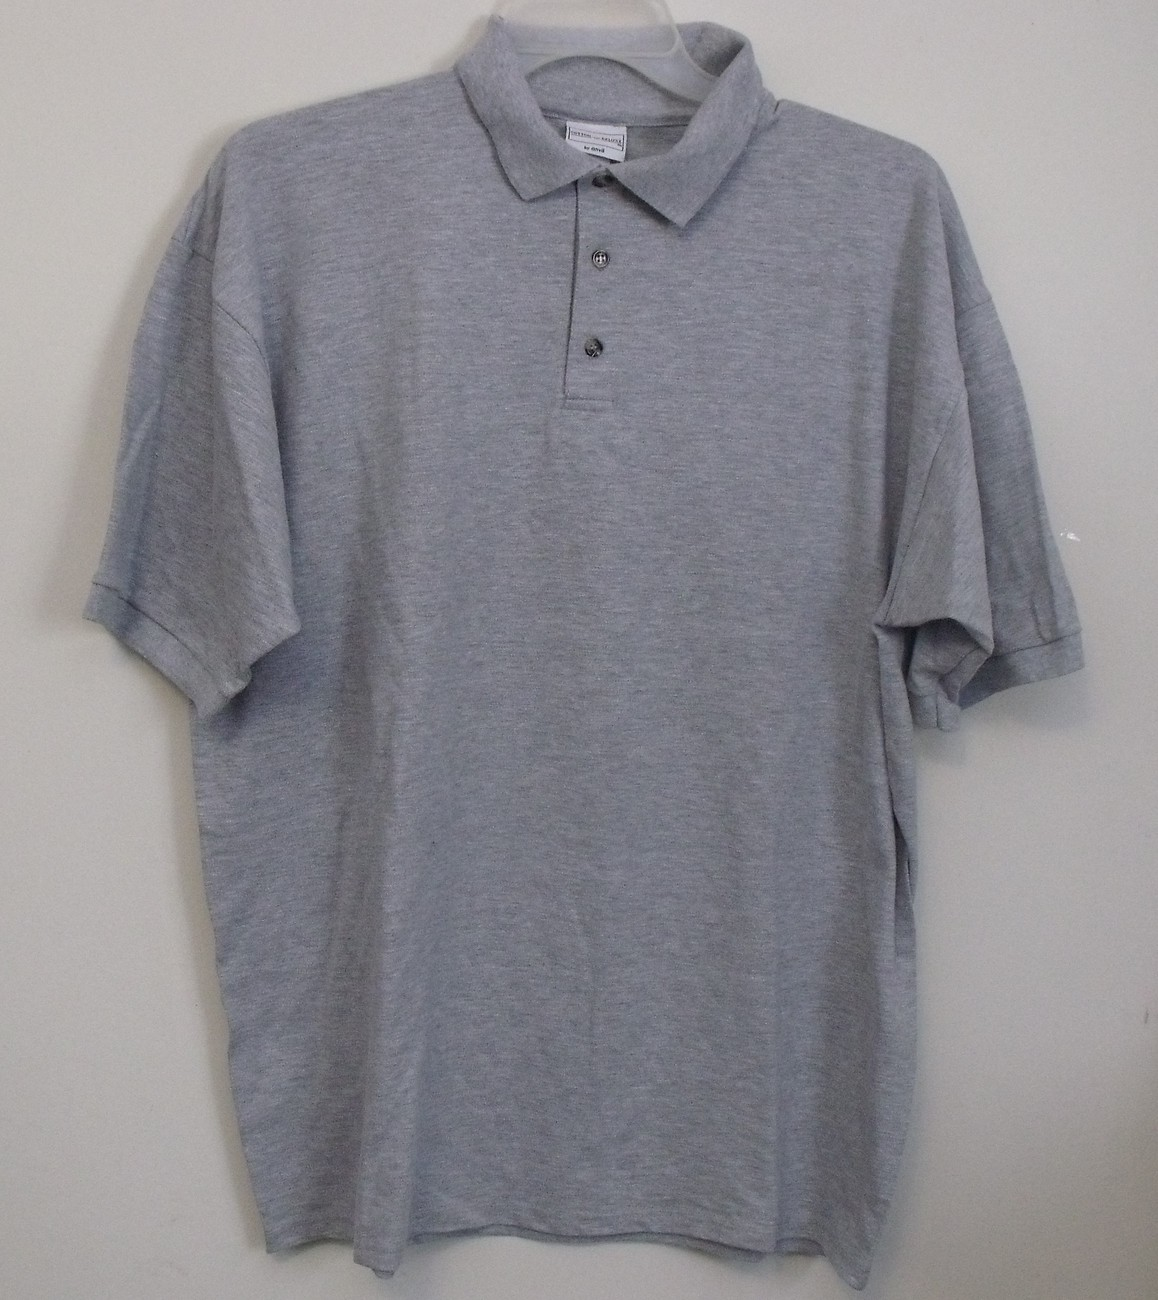 Primary image for Mens Anvil NWOT Gray Short Sleeve Polo Shirt Size XL